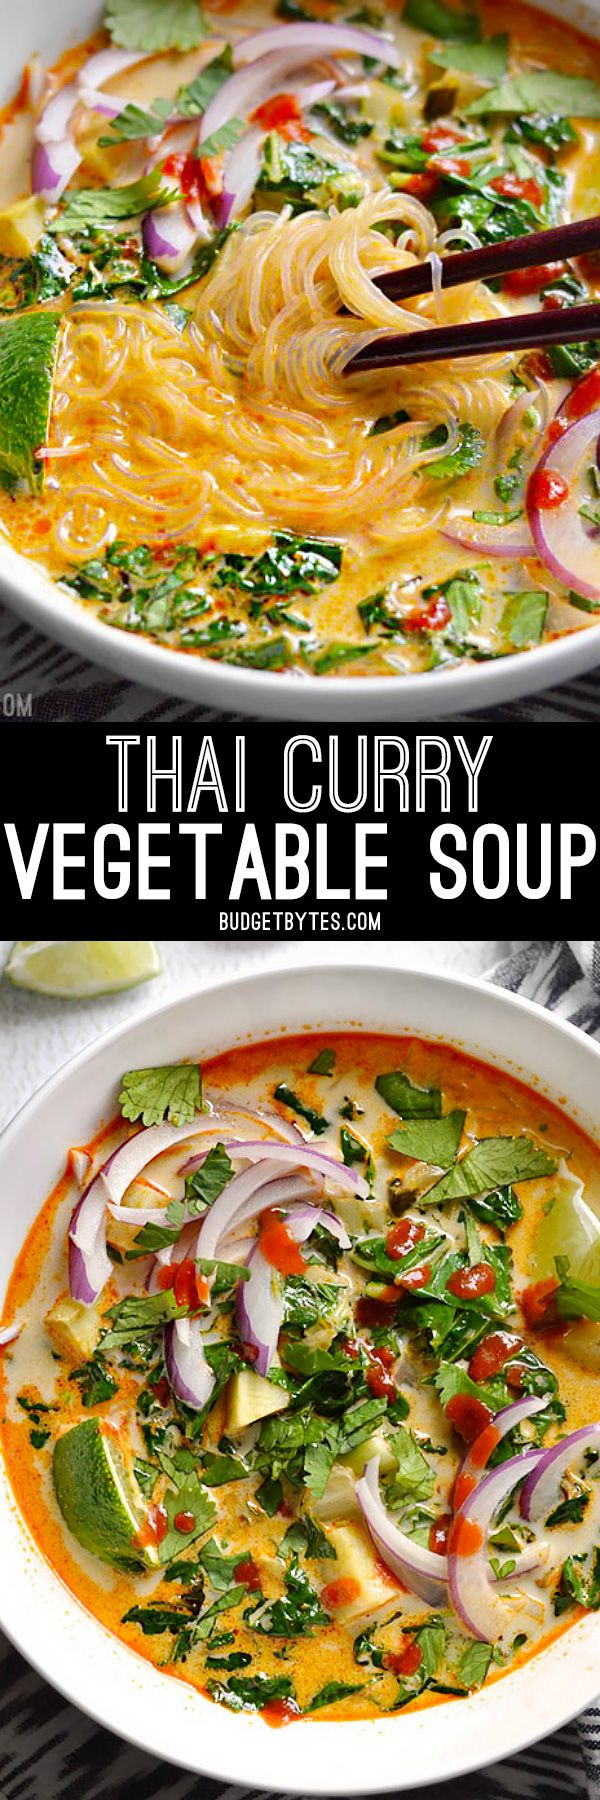 Thai Curry Vegetable Soup is packed with vegetables, spicy Thai flavor, and creamy coconut milk. BudgetBytes.com looks good gotta cut some ingredients out to make it totally vegan